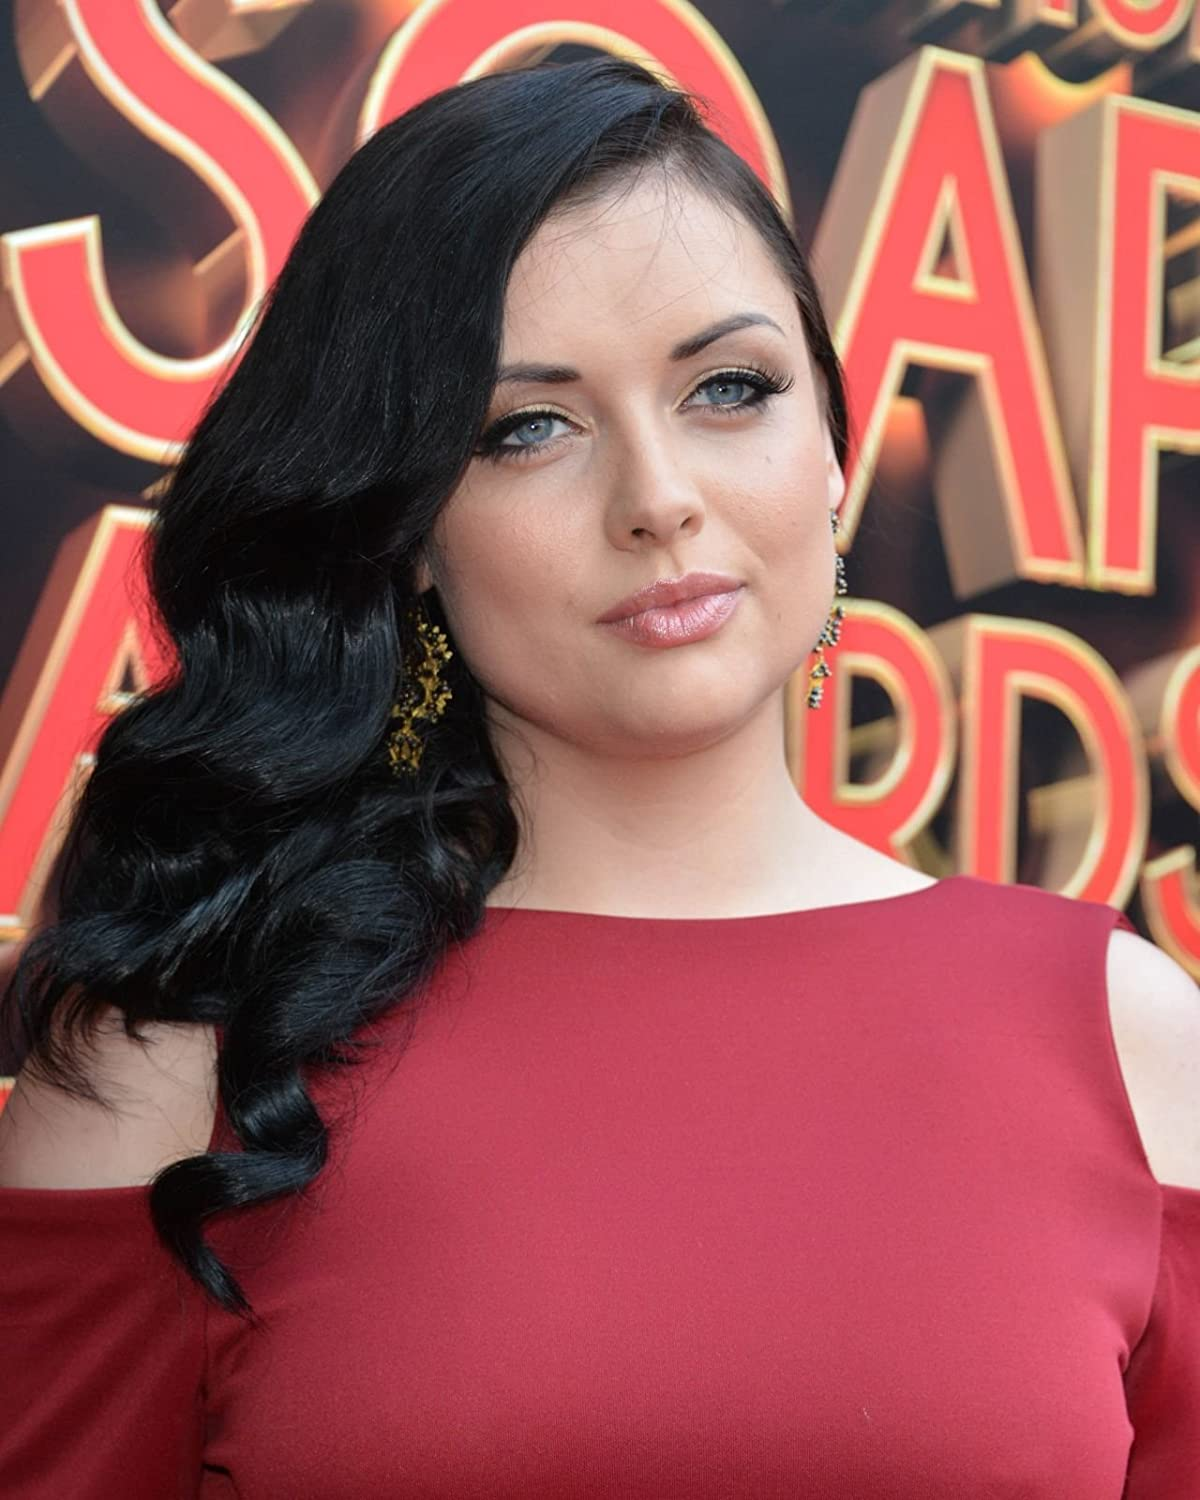 Shona Mcgarty Nude Photos 63